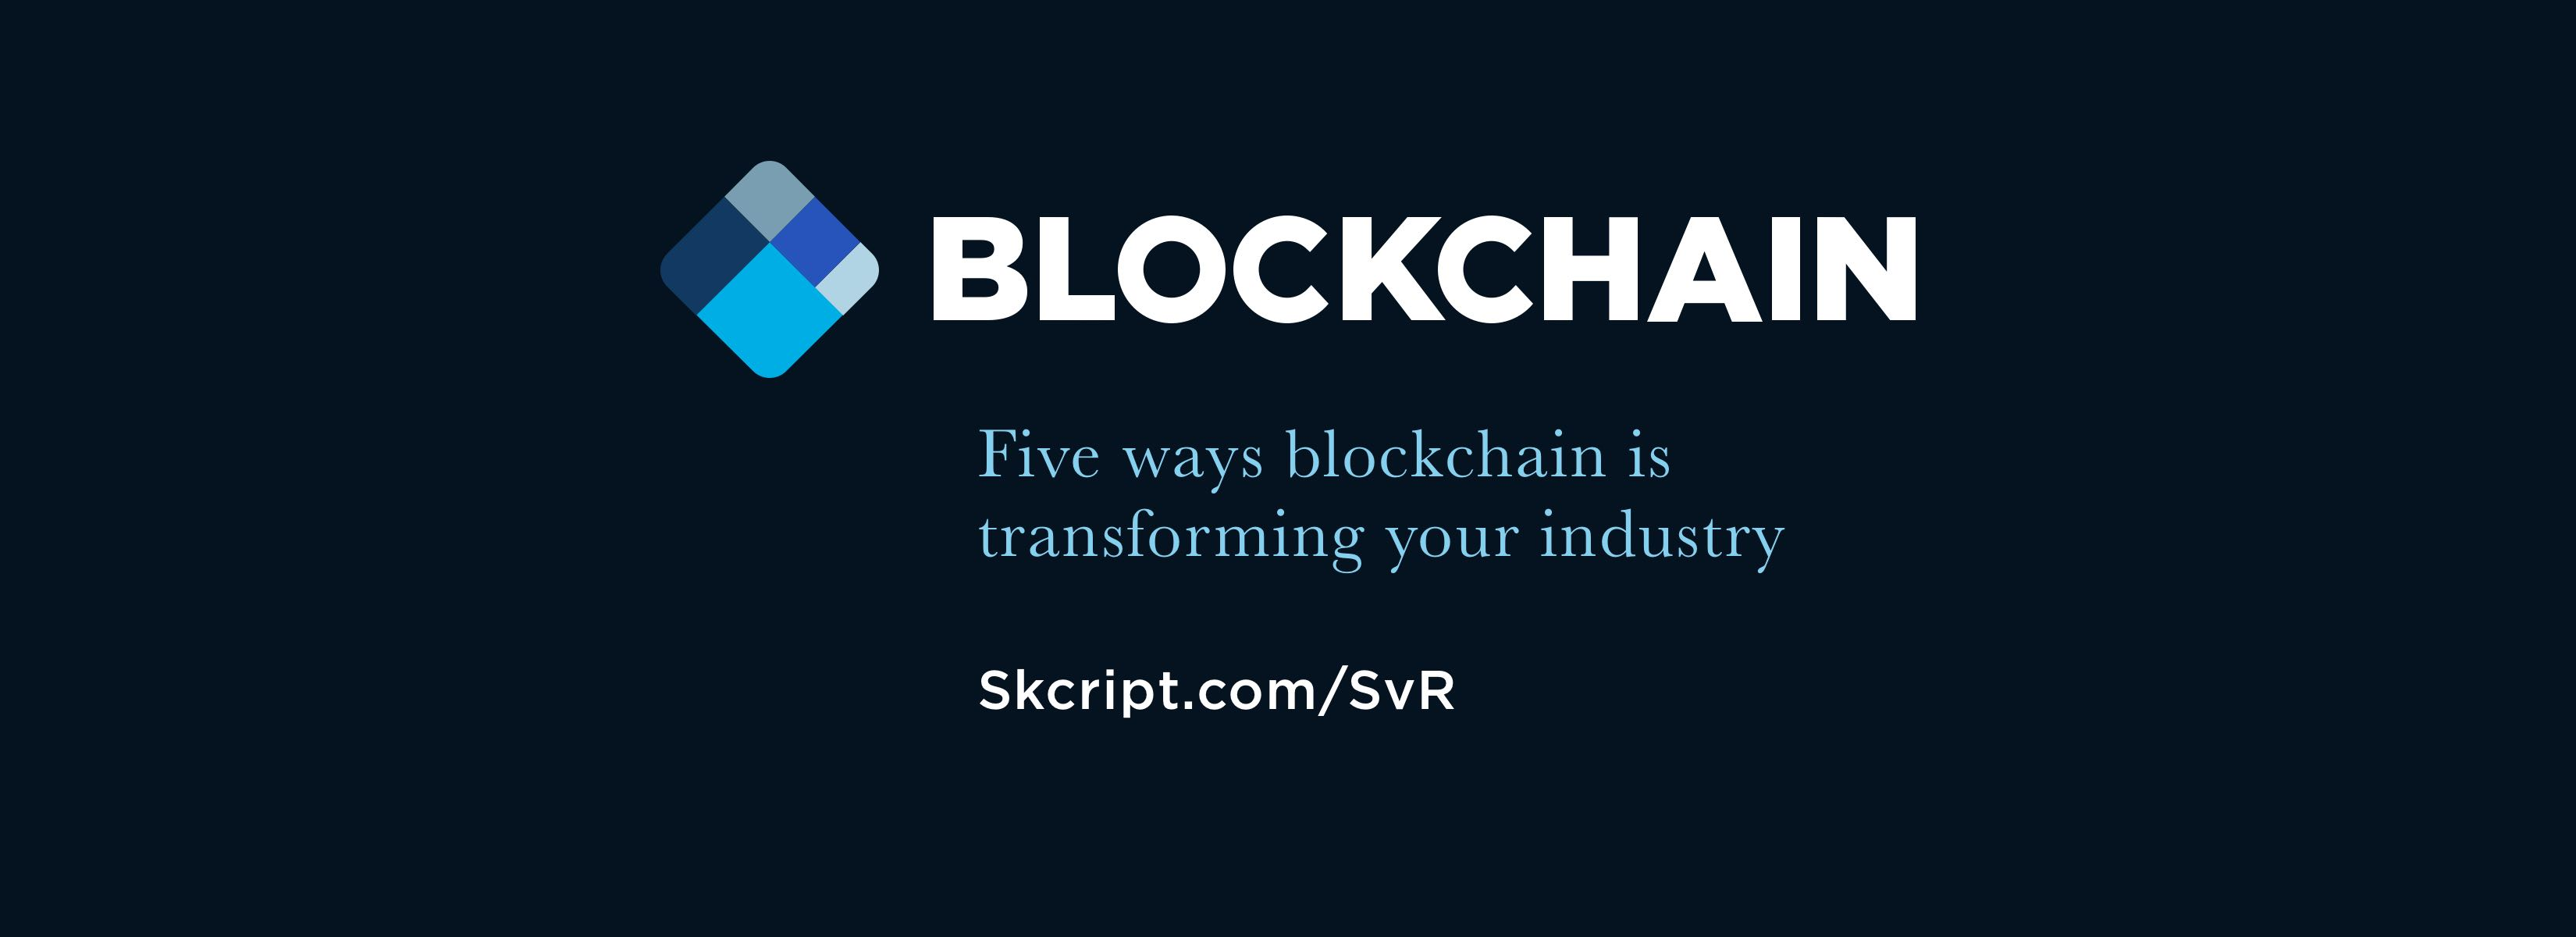 Five ways blockchain is transforming your industry